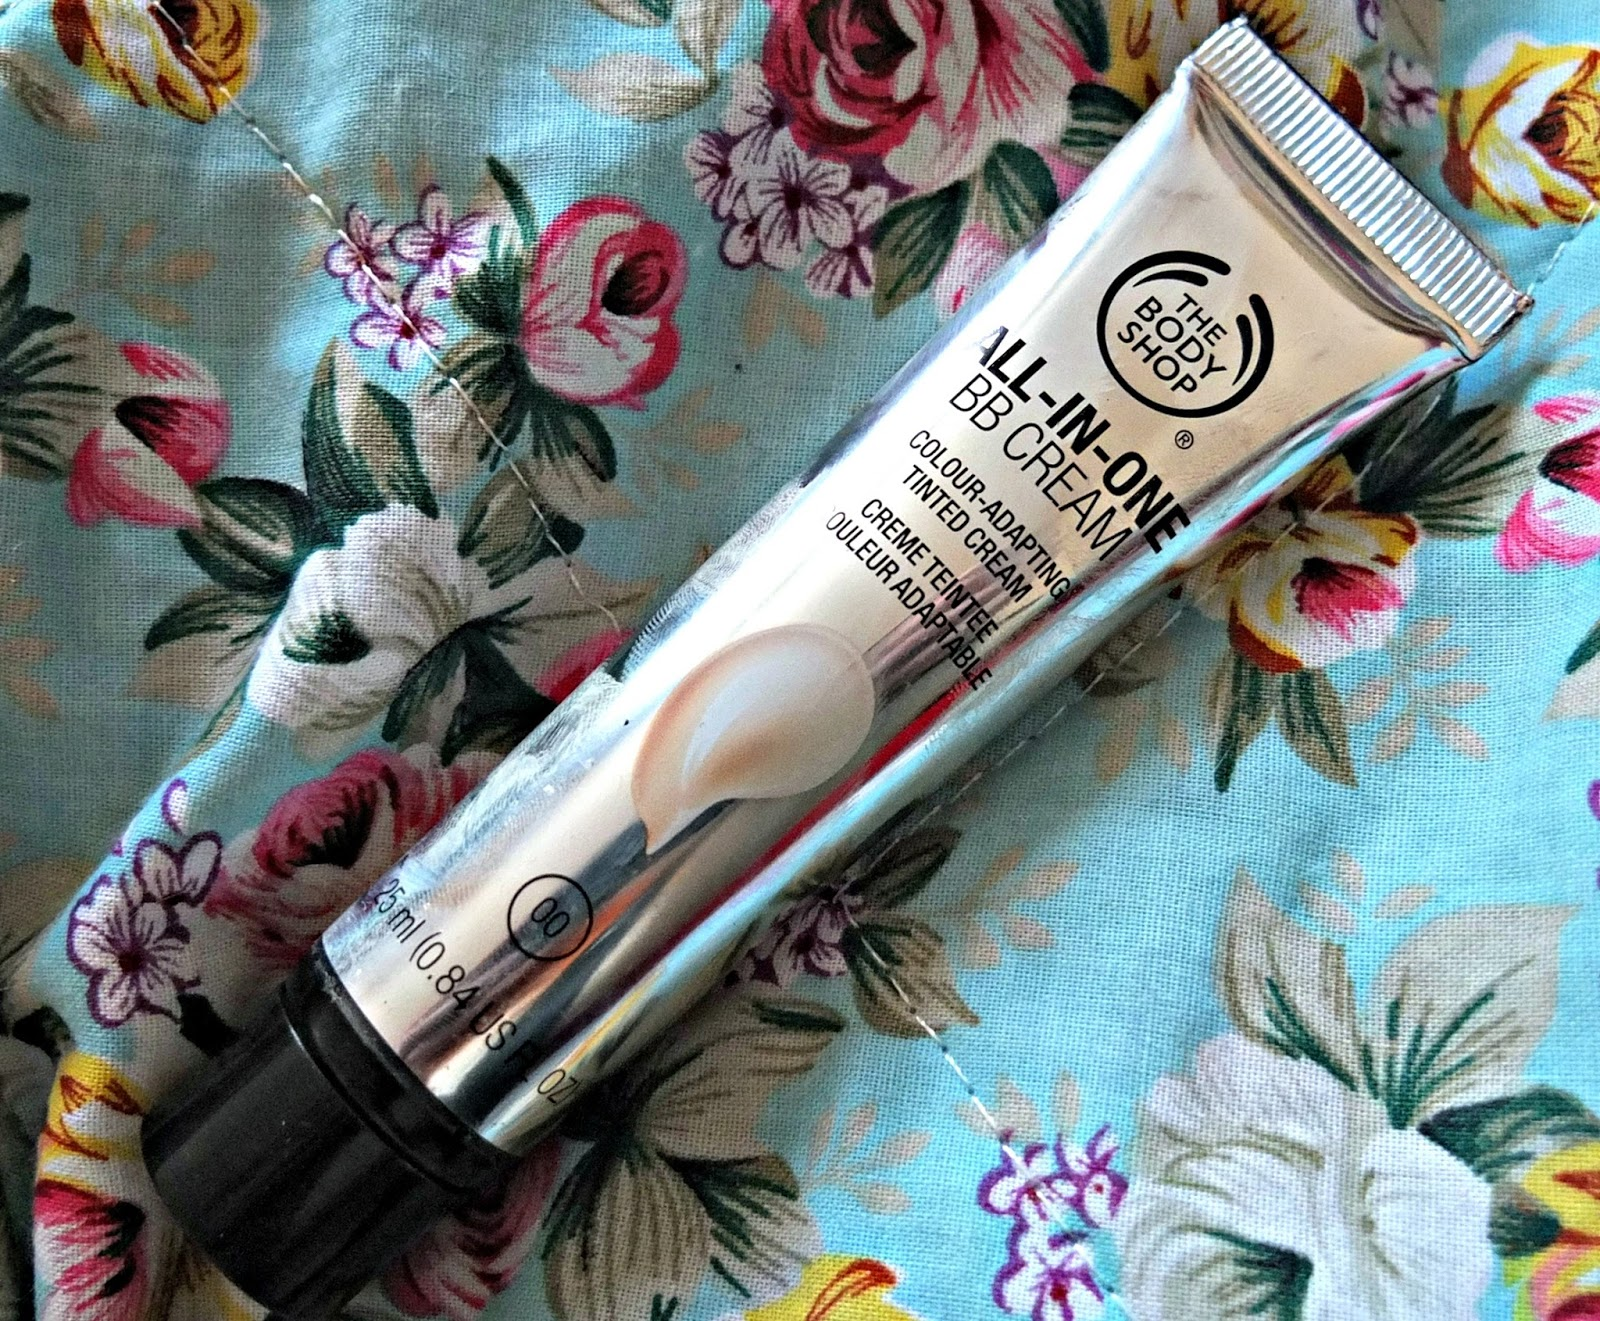 UK blog review of the body shop all in one BB cream on Hello Terri Lowe.